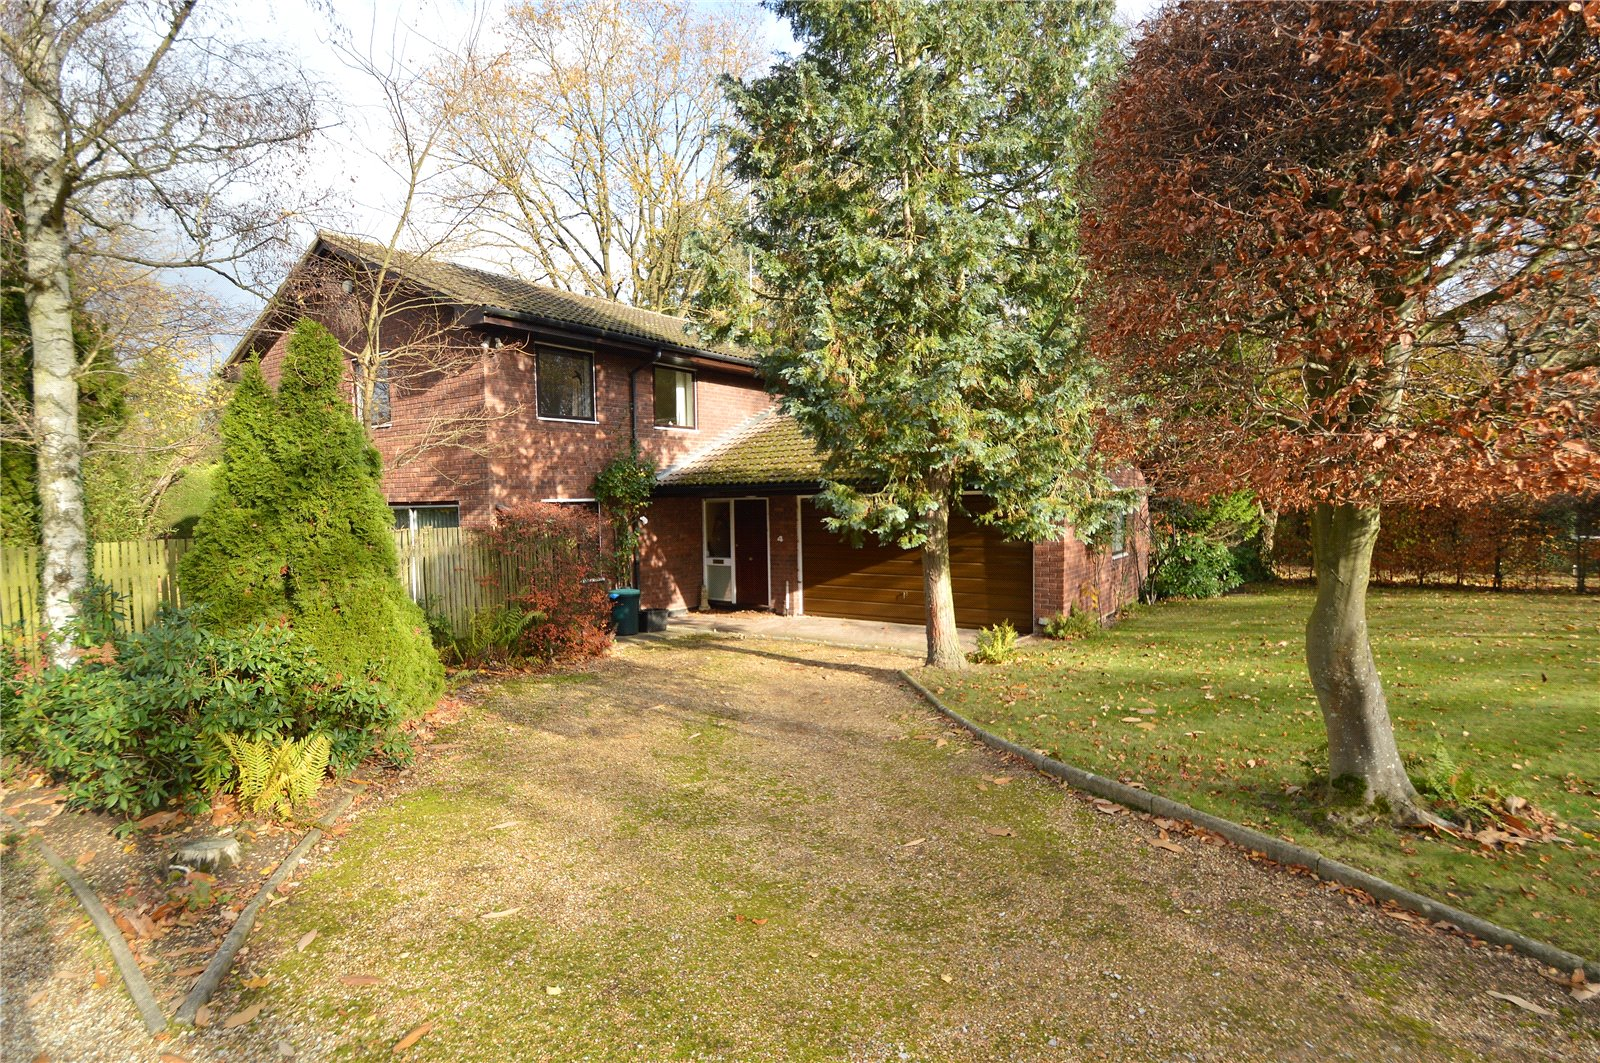 Property for sale | 4 Bedroom Detached House property in Wokingham, Berkshire, RG41 |  |